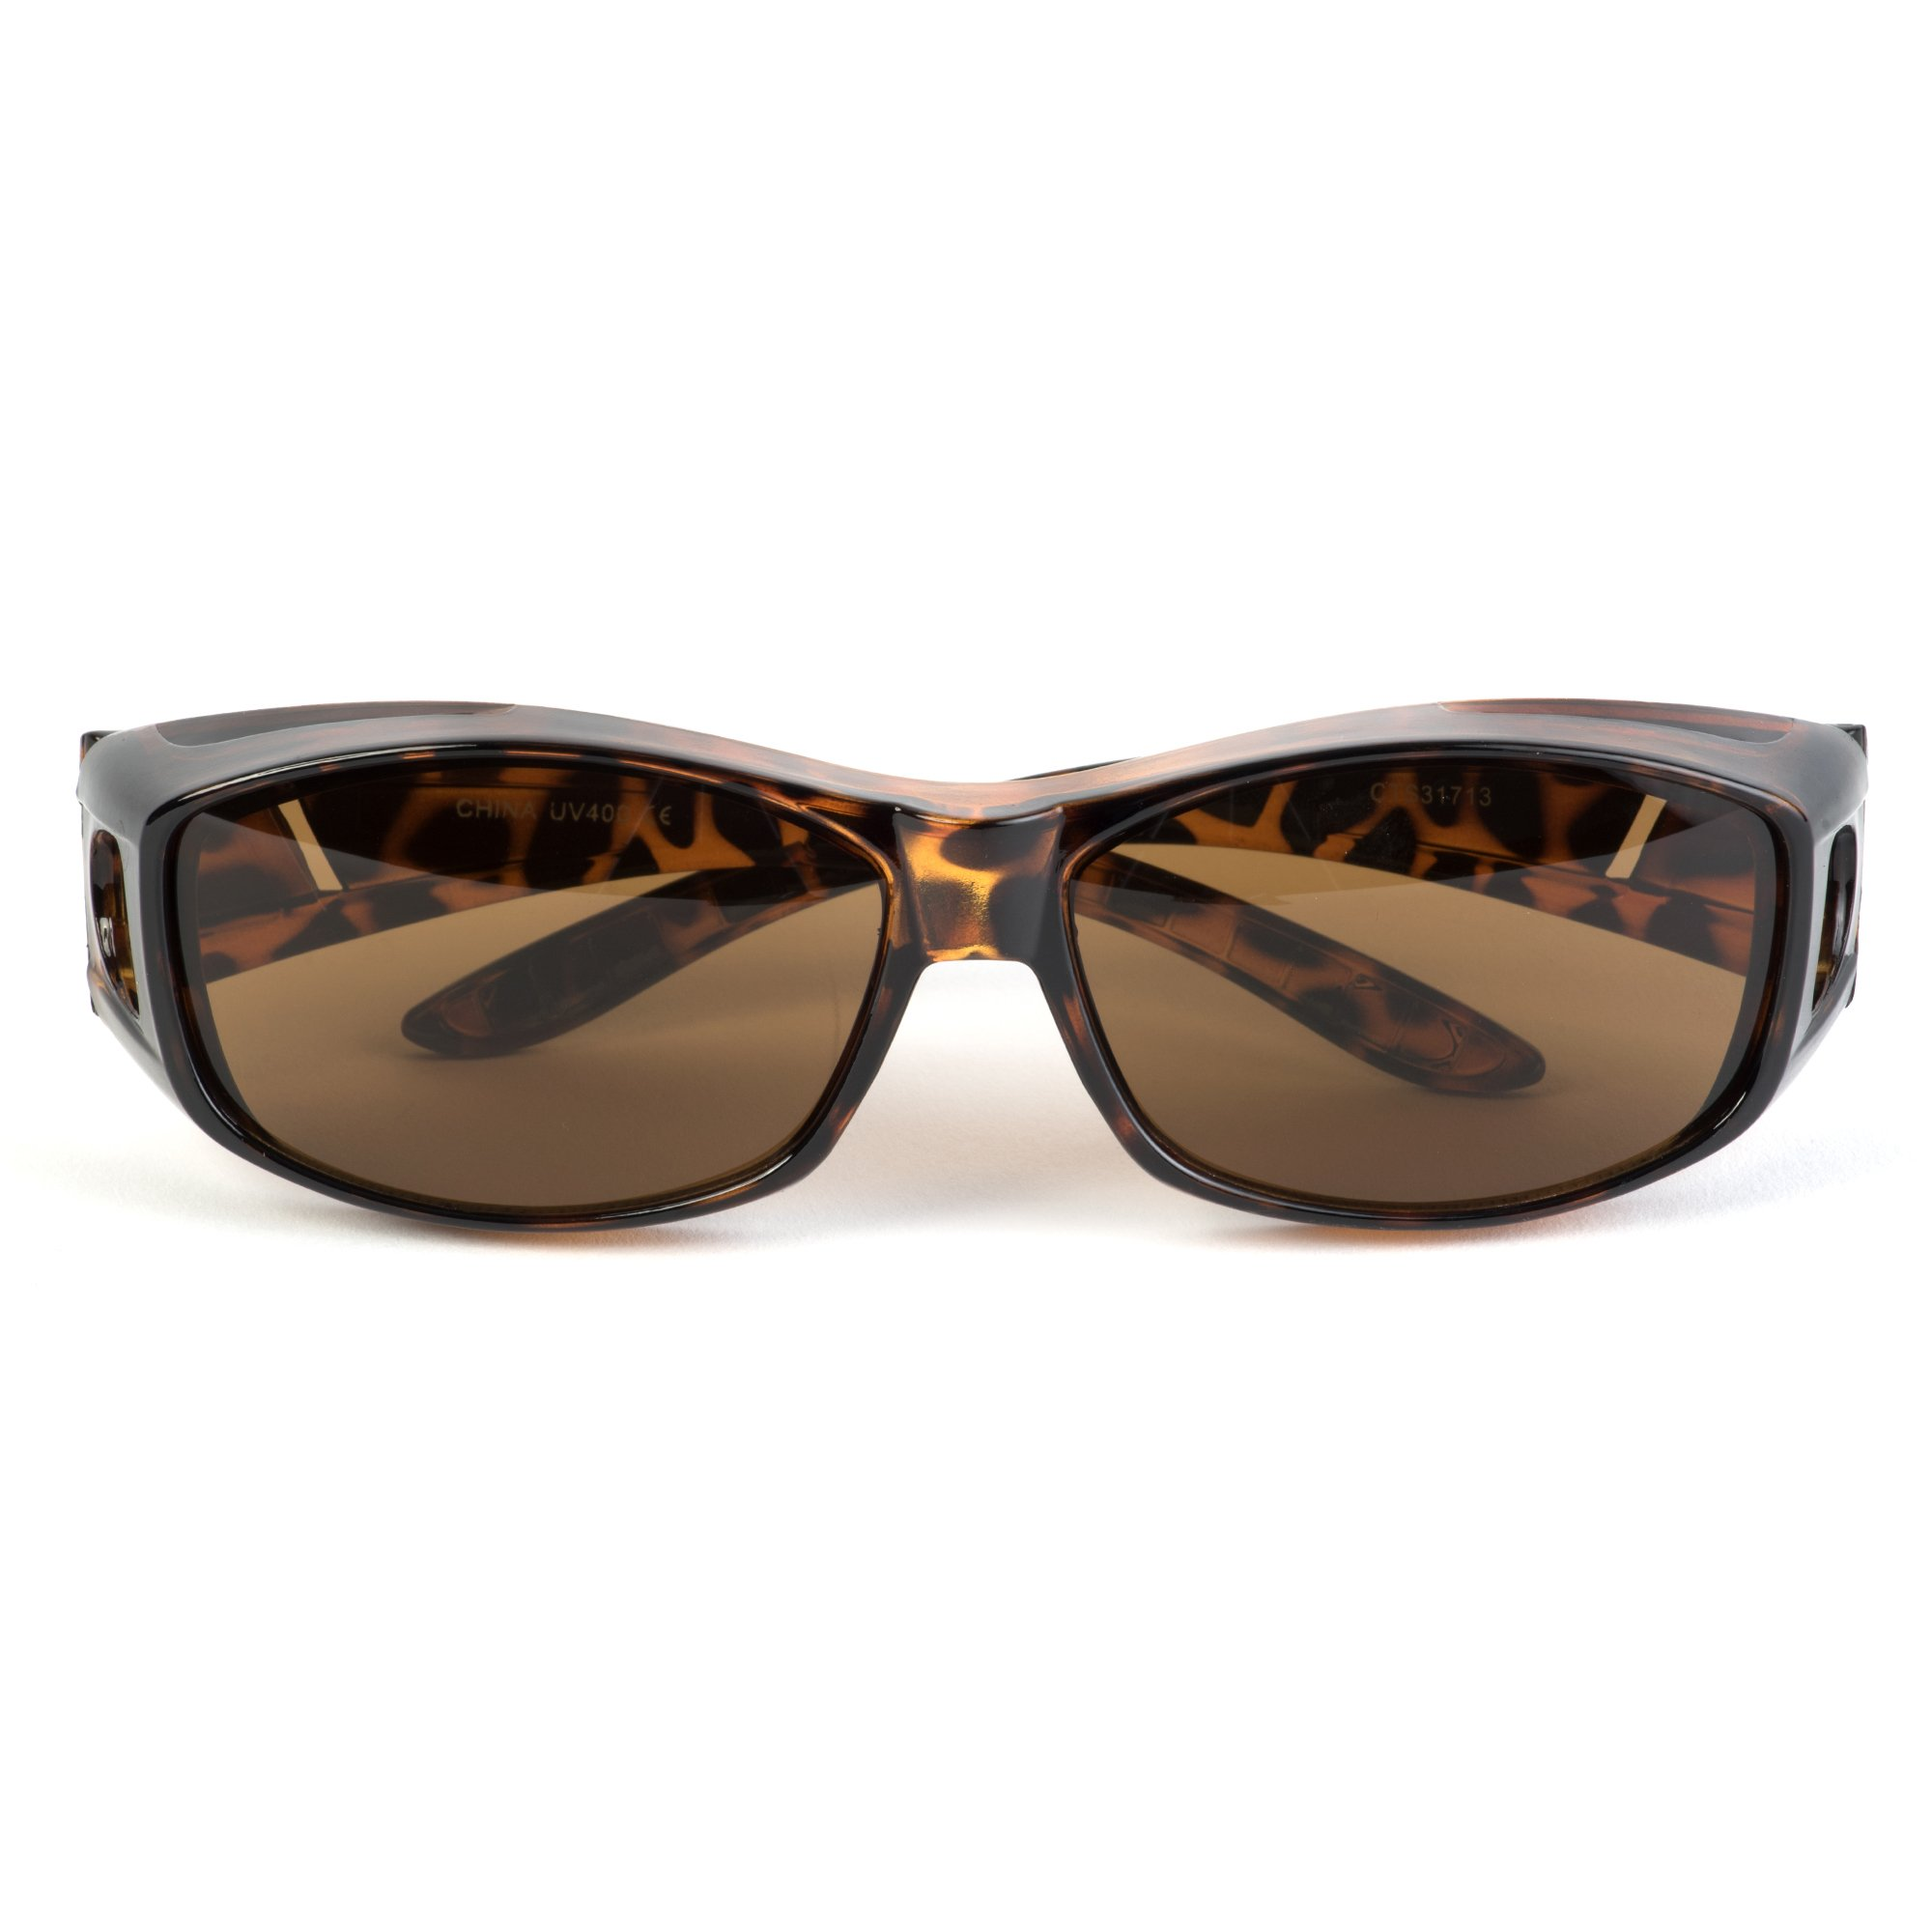 Over Glasses Sunglasses - Fitover Sunglasses with 100% UV Protection - By Pointed Designs (Leopard) by Pointed Designs (Image #2)